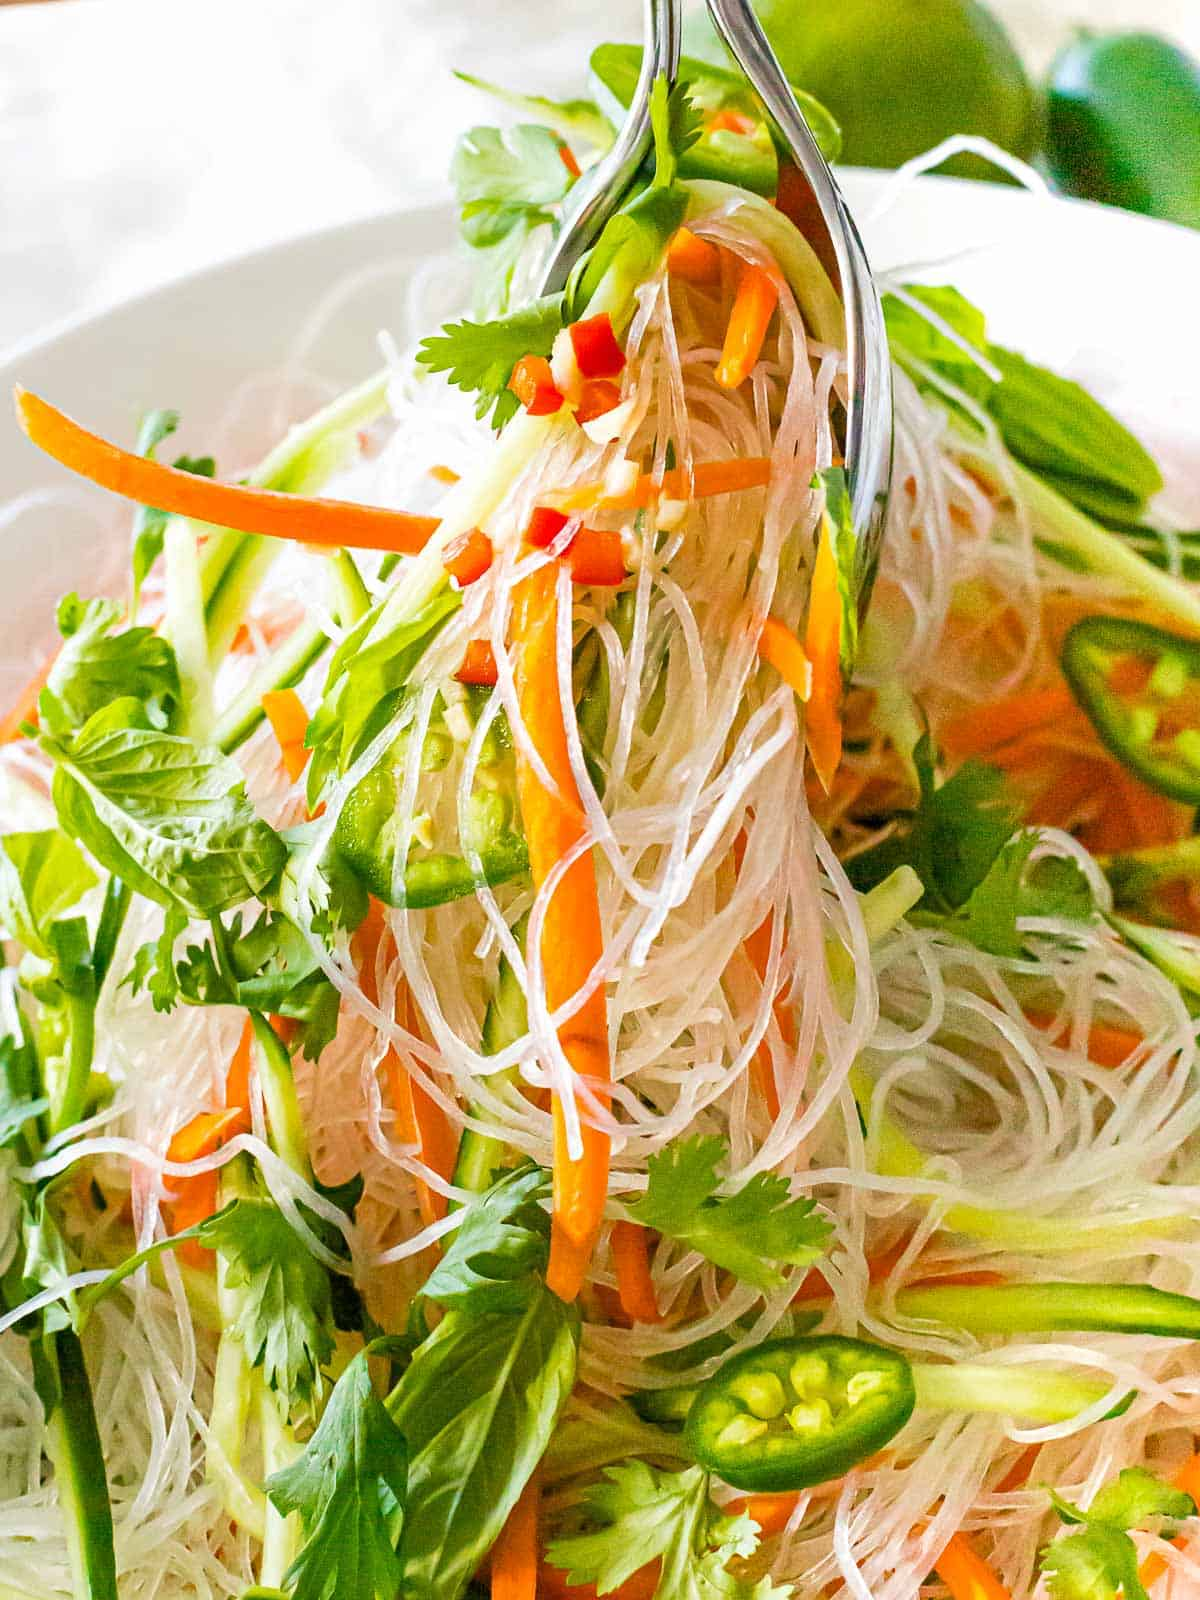 Vietnamese noodle salad with vermicelli rice noodles, basil, cilantro, carrots, and green peppers being lifted from a white bowl.